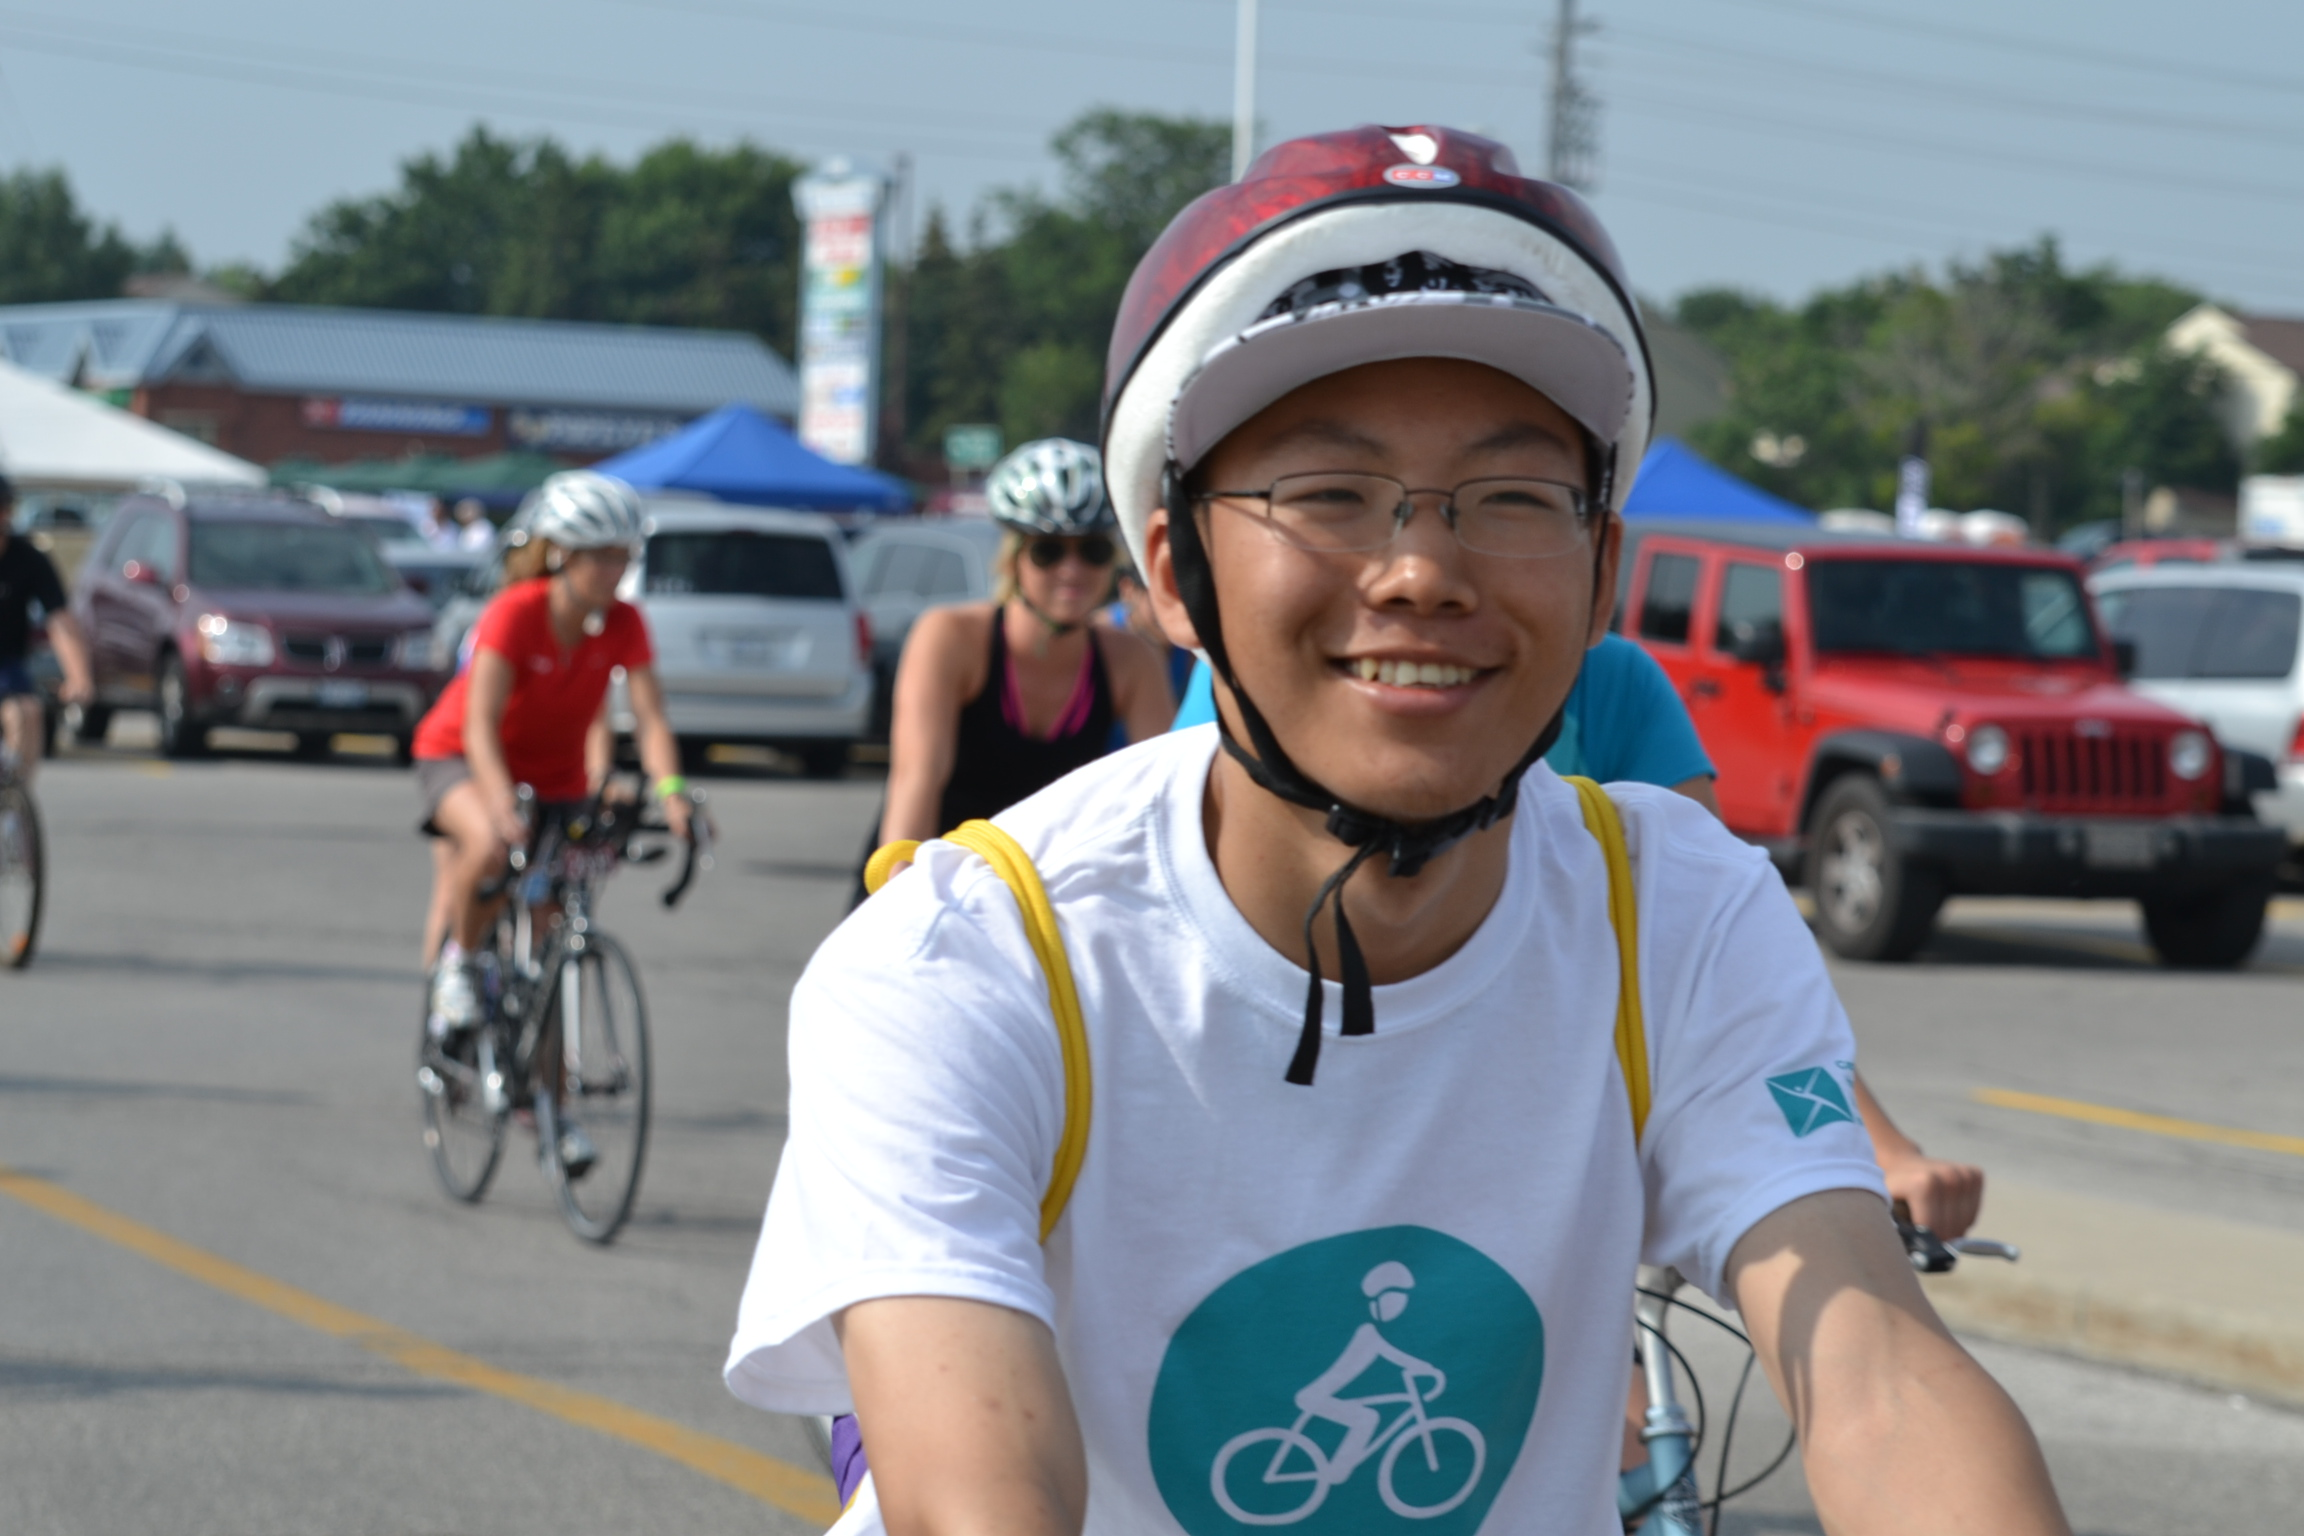 Photo of cyclist taking part in Ride Don't Hide event. (Photo courtesy ridedonthide.com)